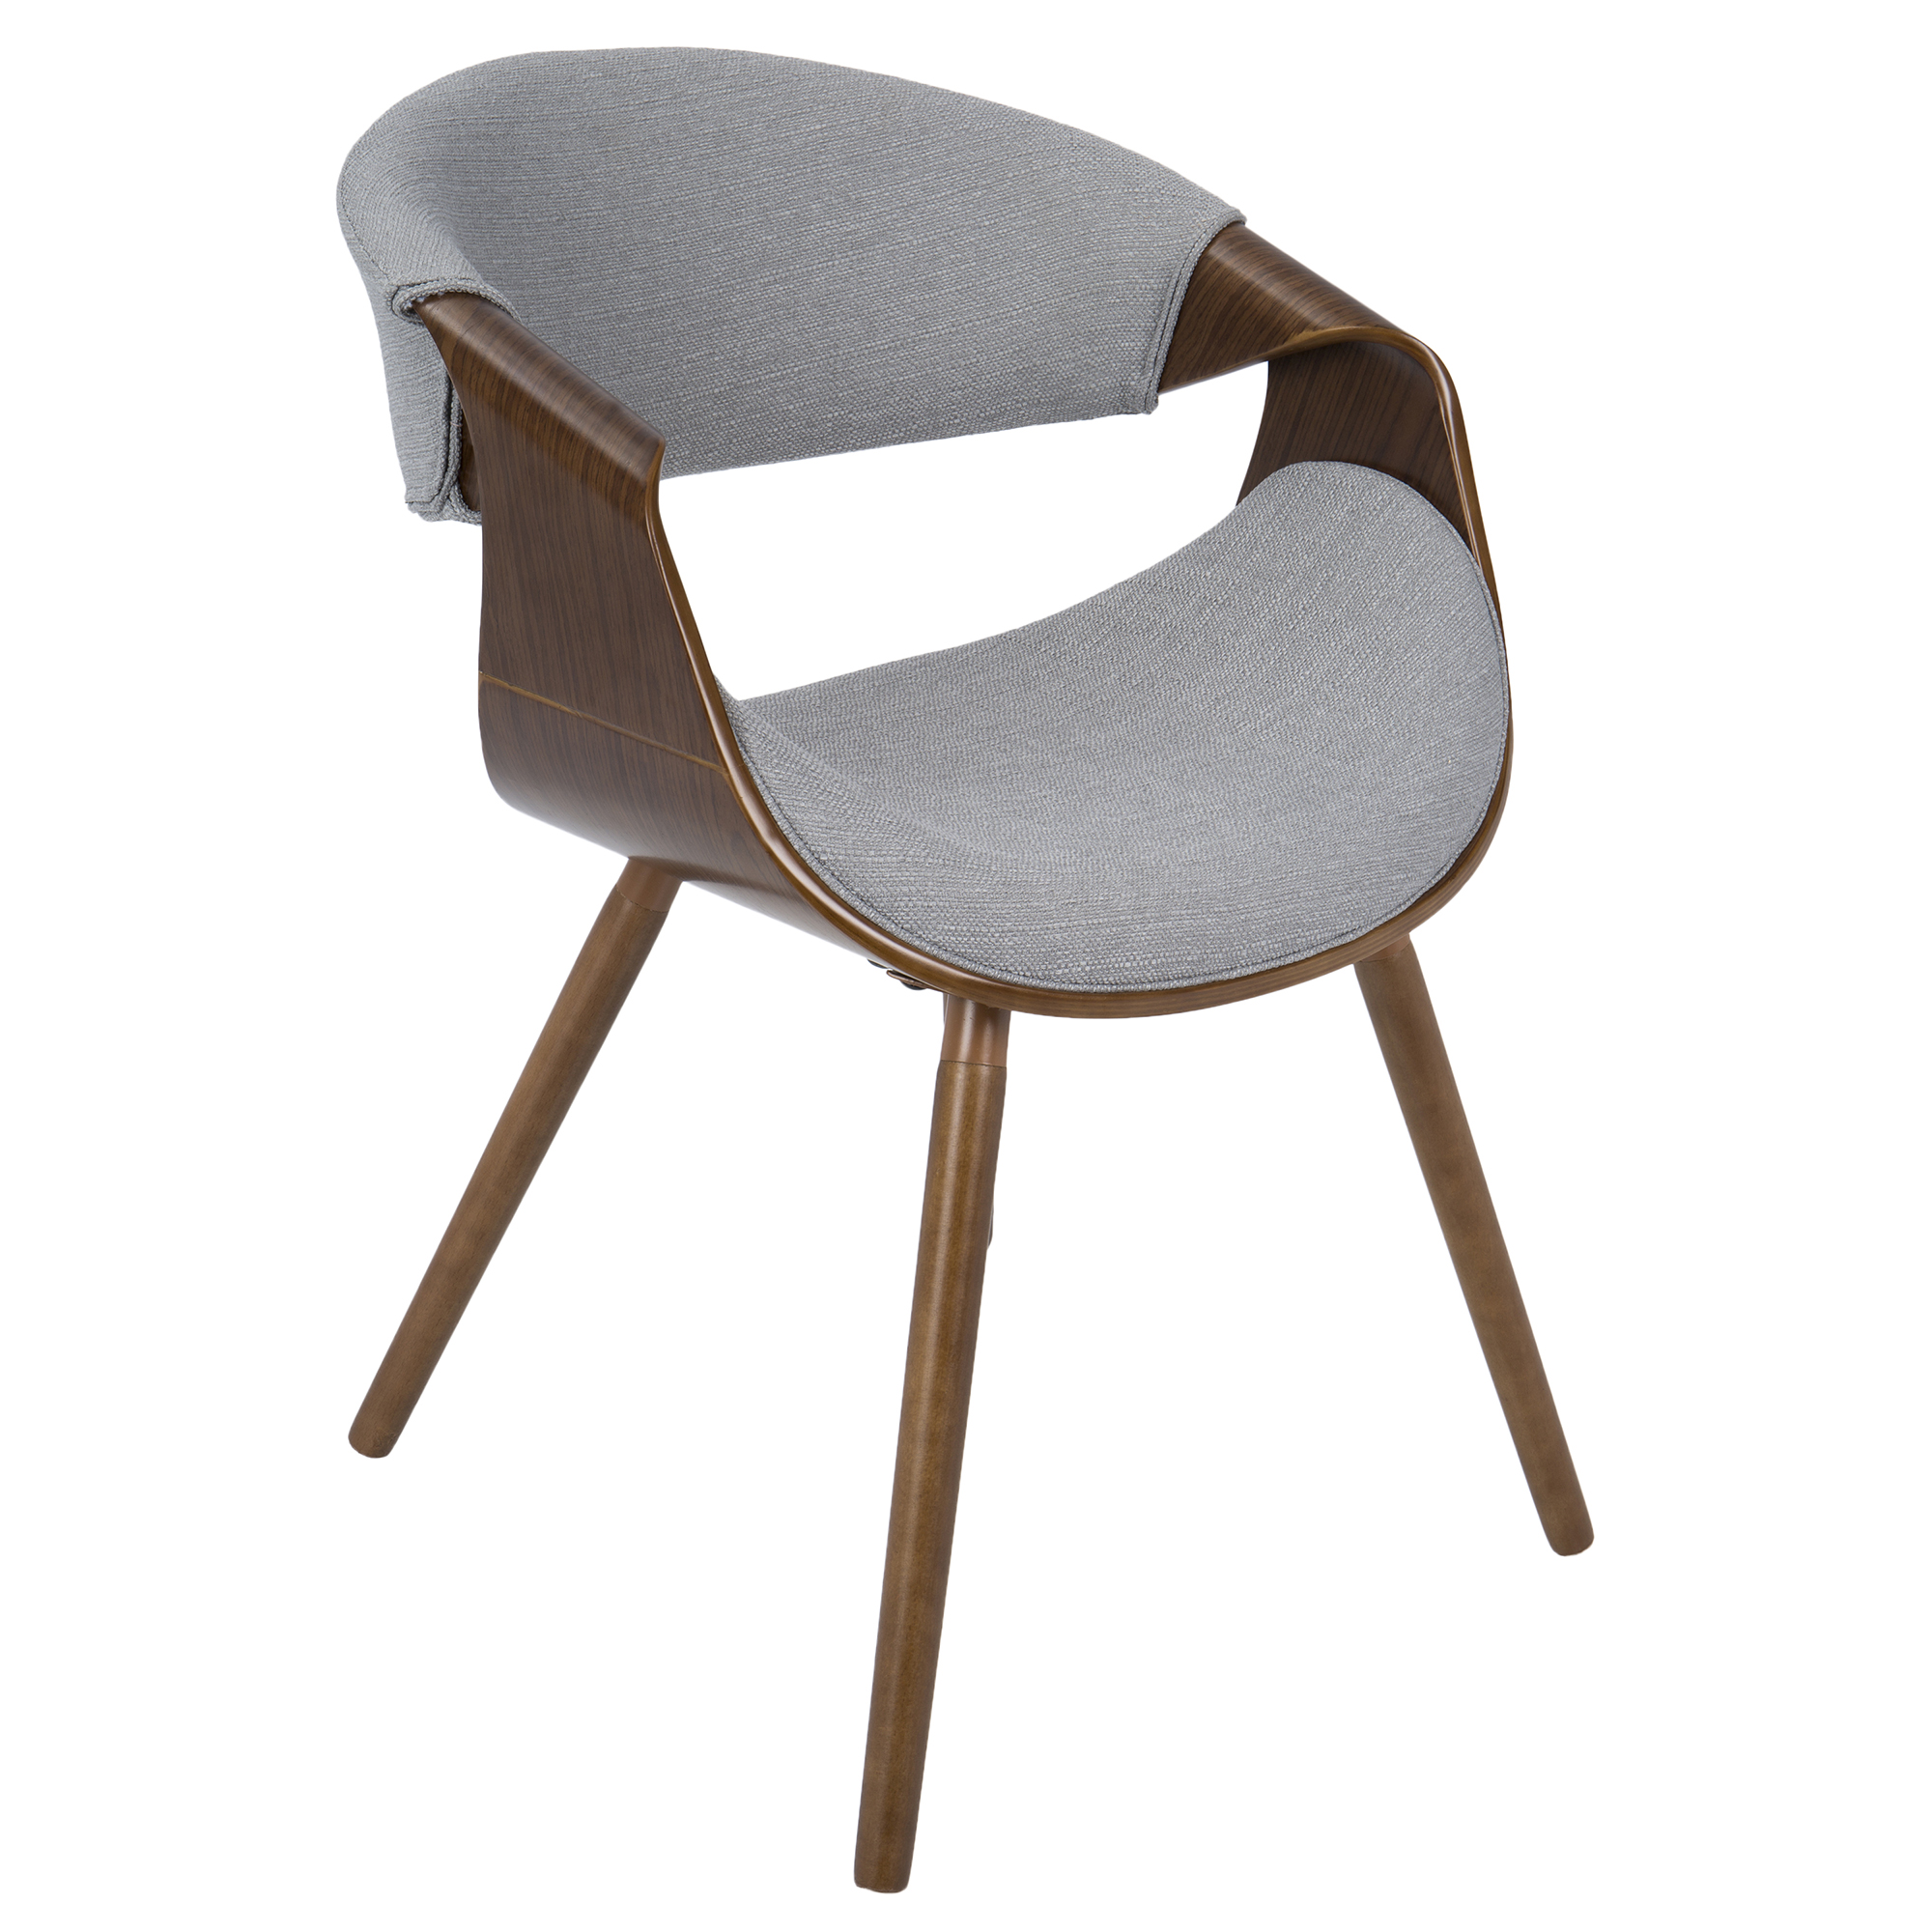 Curvo Mid-Century Modern Dining/Accent Chair in Walnut and Grey Fabric by LumiSource